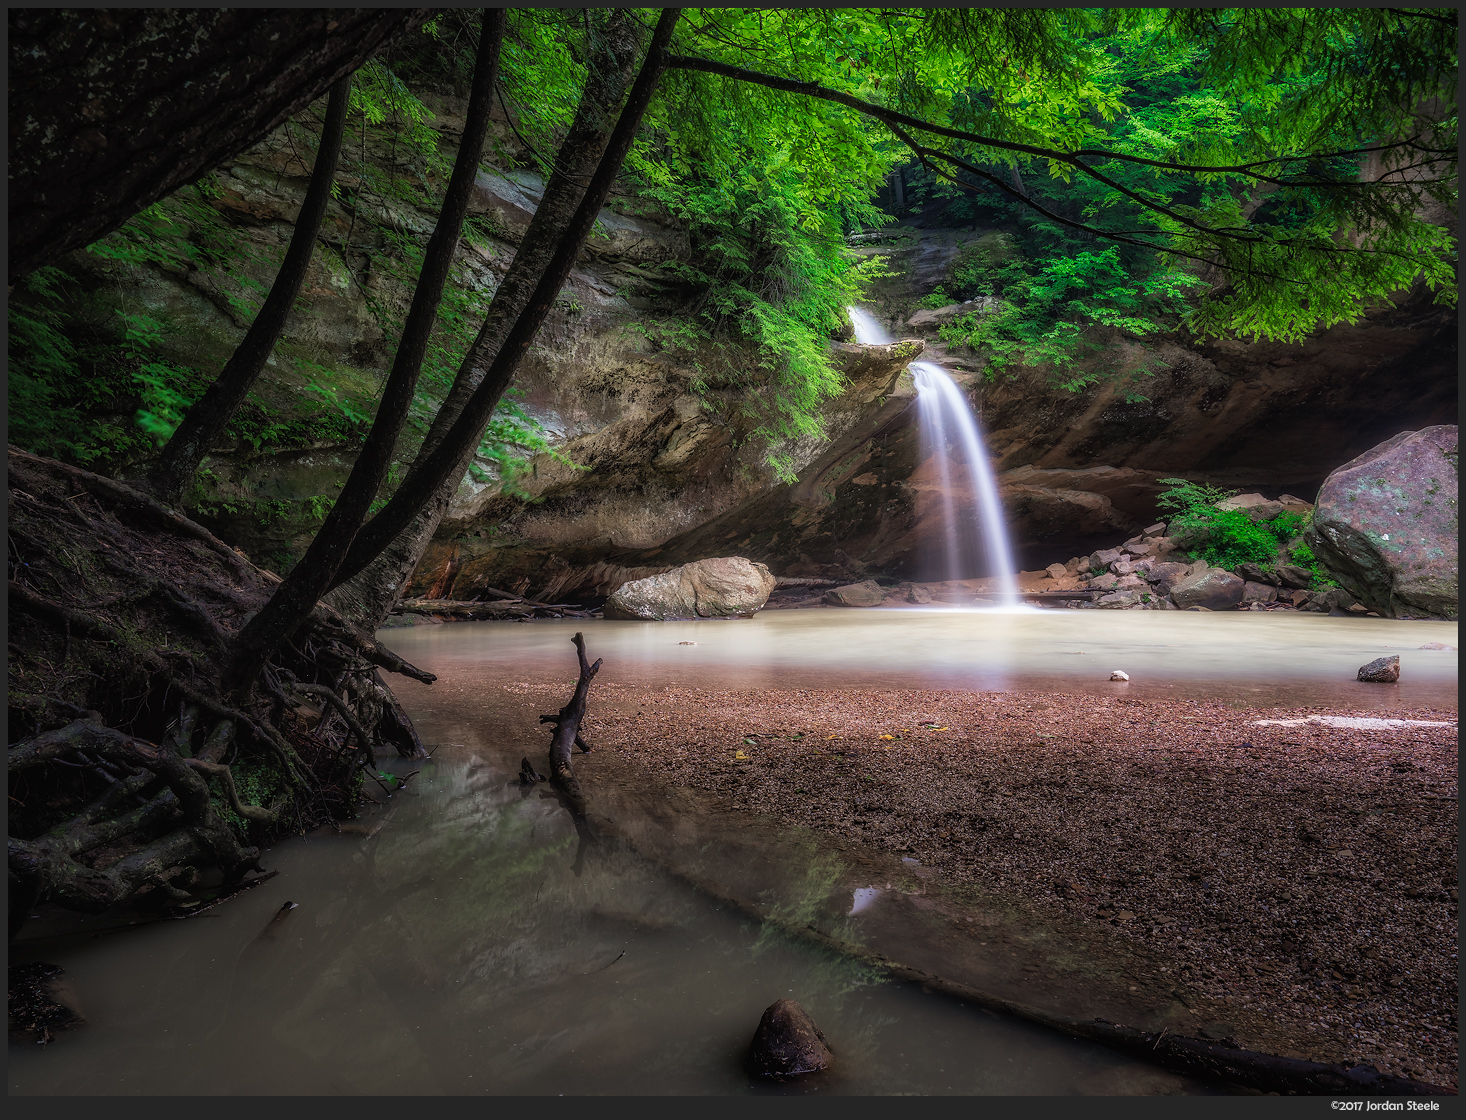 Lower Falls, Hocking Hills State Park, Ohio - Sony A7 II with